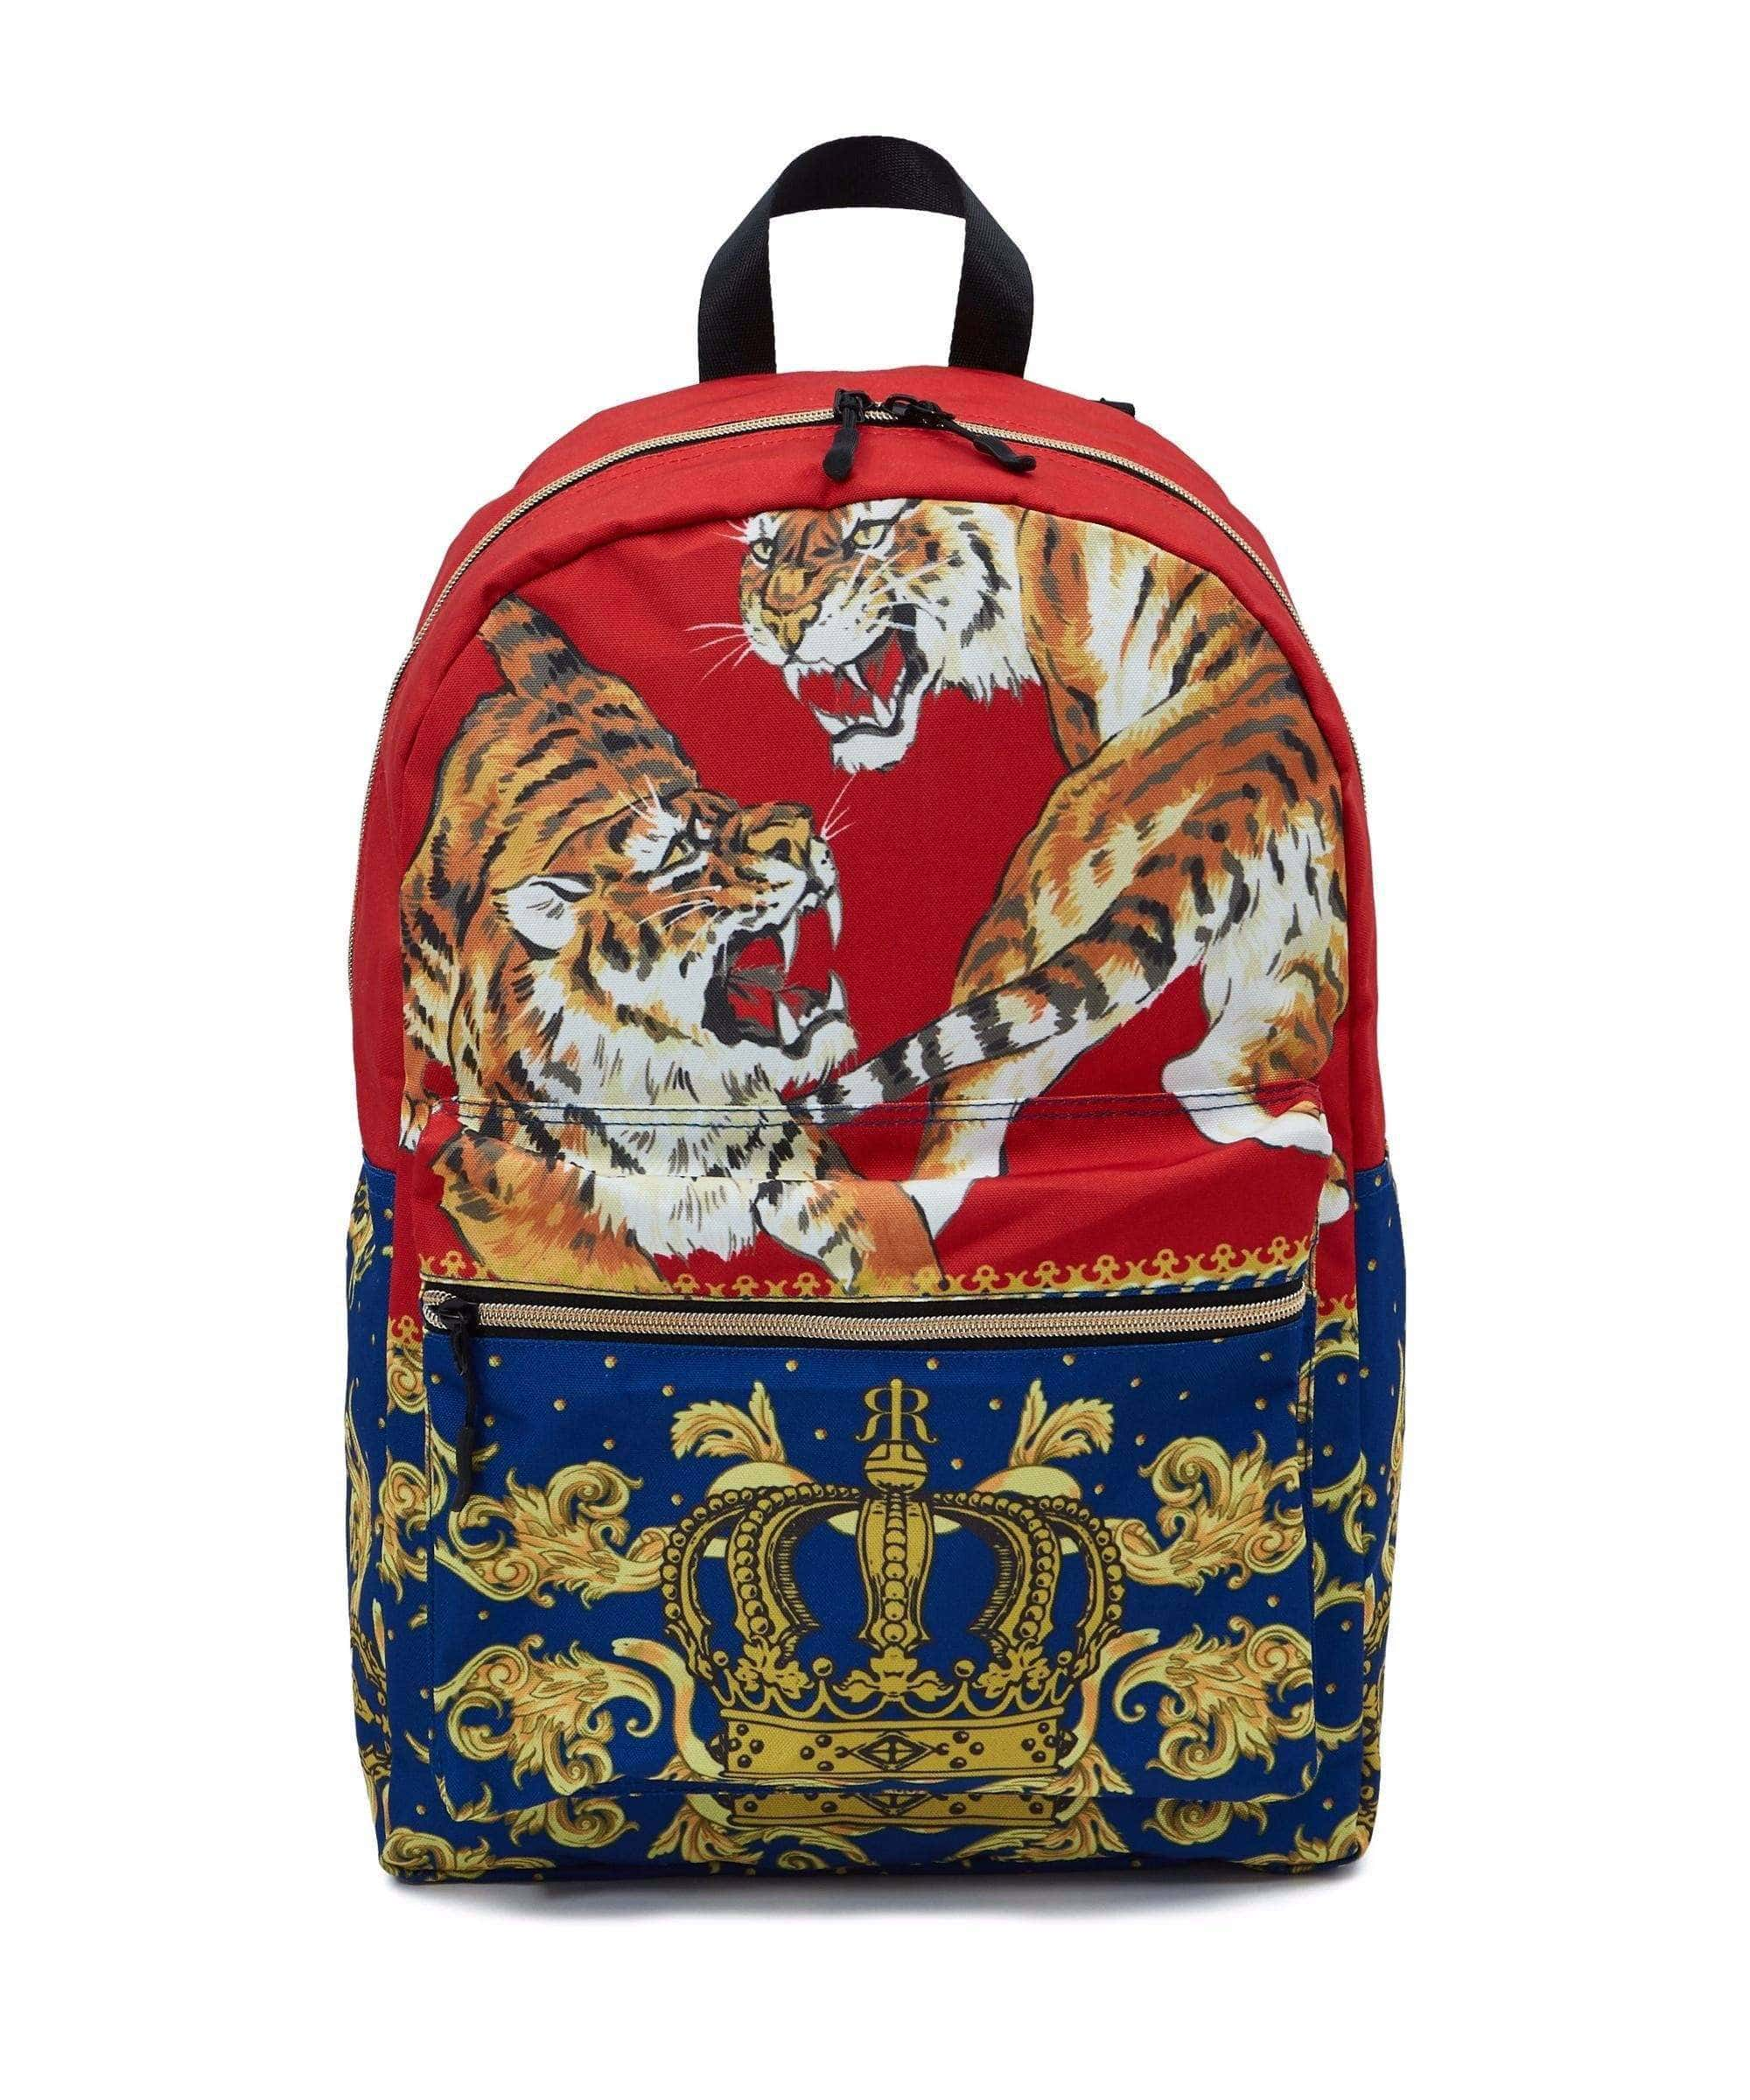 FIGHTING TIGER BAG Reason Clothing